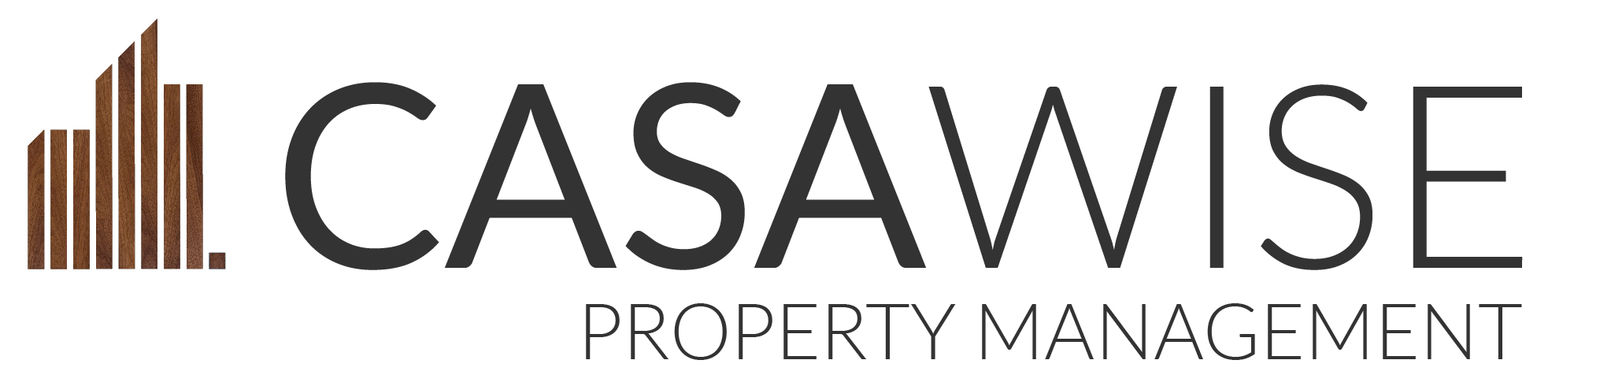 CasaWise Property Management